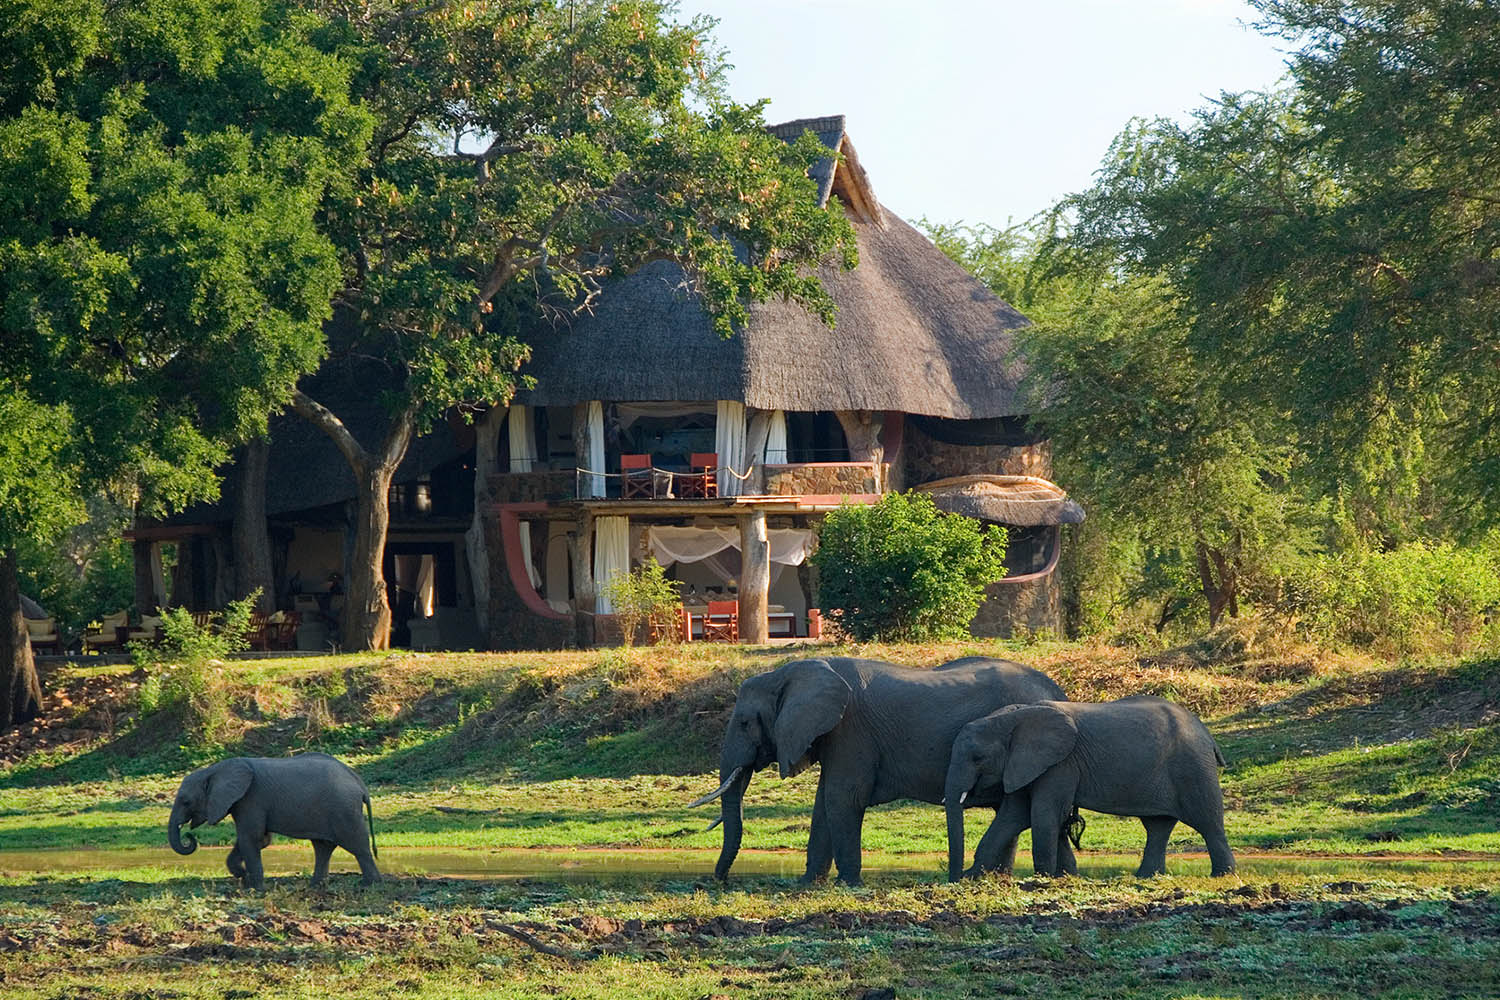 luangwa safari house lodge-zambia-in-style-tours-safari-packages-lodges-south-luangwa-national-park-elephants-walking